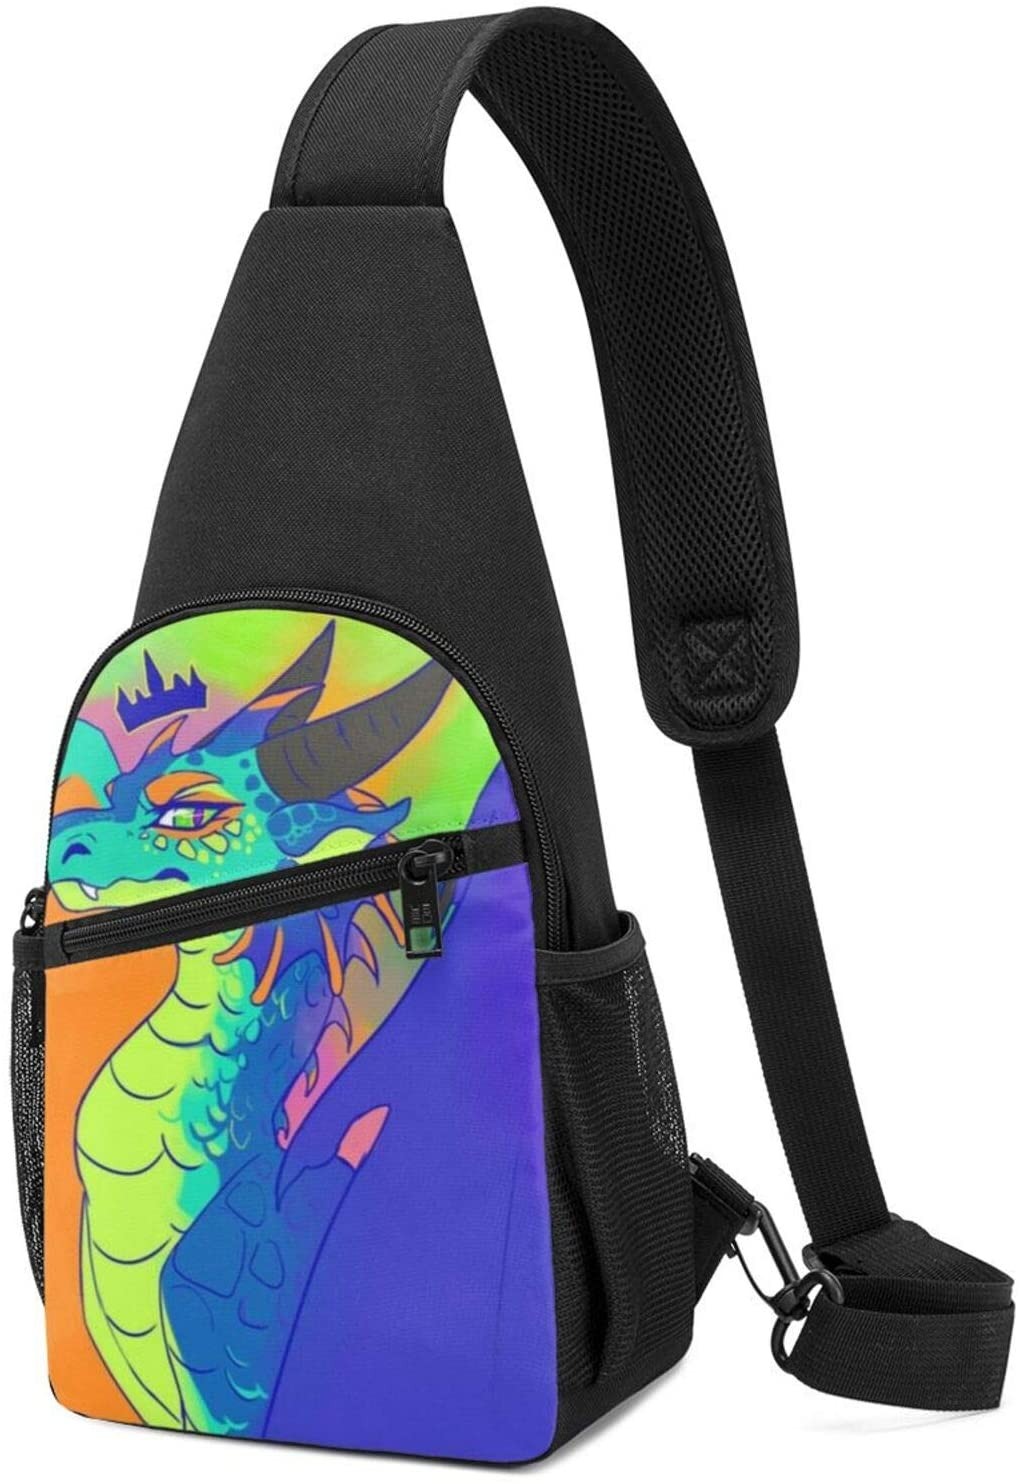 Doobey Wings of Fire Jade Winglet Chest Pack Bag Single Shoulder Chest Bag for Outdoor Travel Hiking Sports Casual Bag for Men & Women